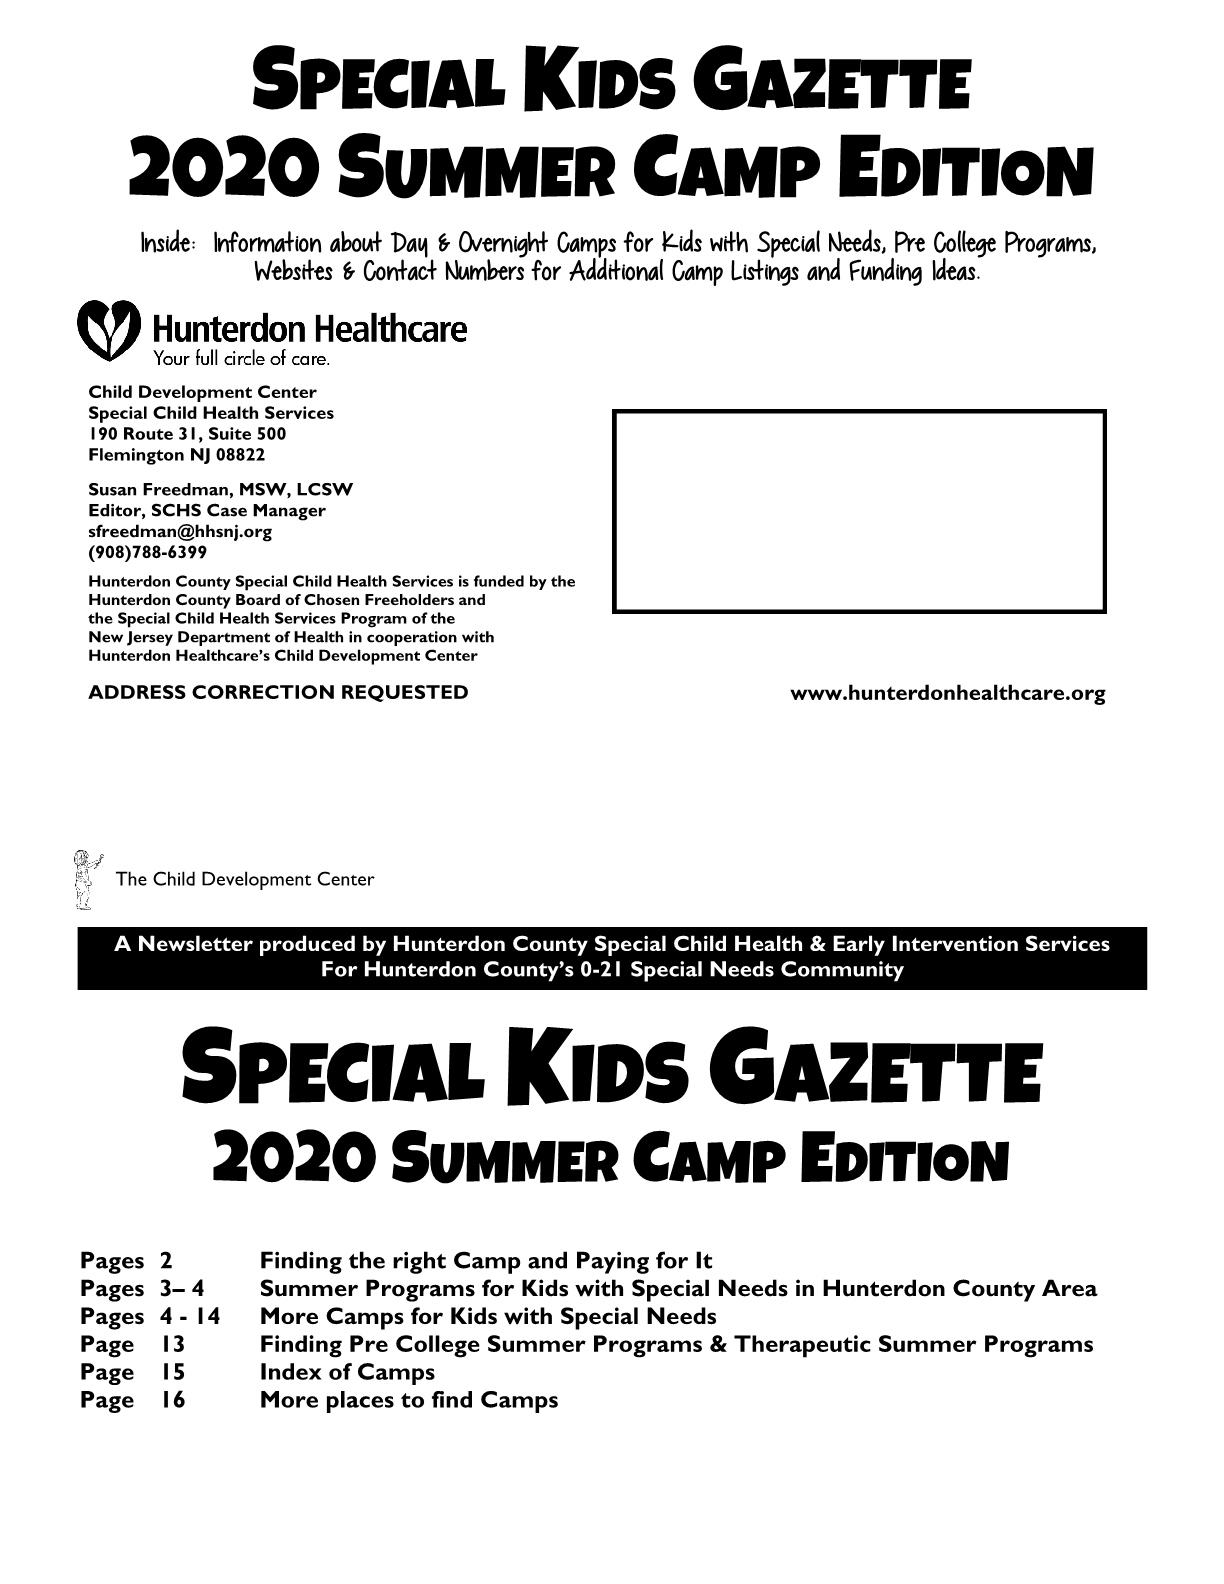 Special Kids Gazette Summer Camp Edition 2020